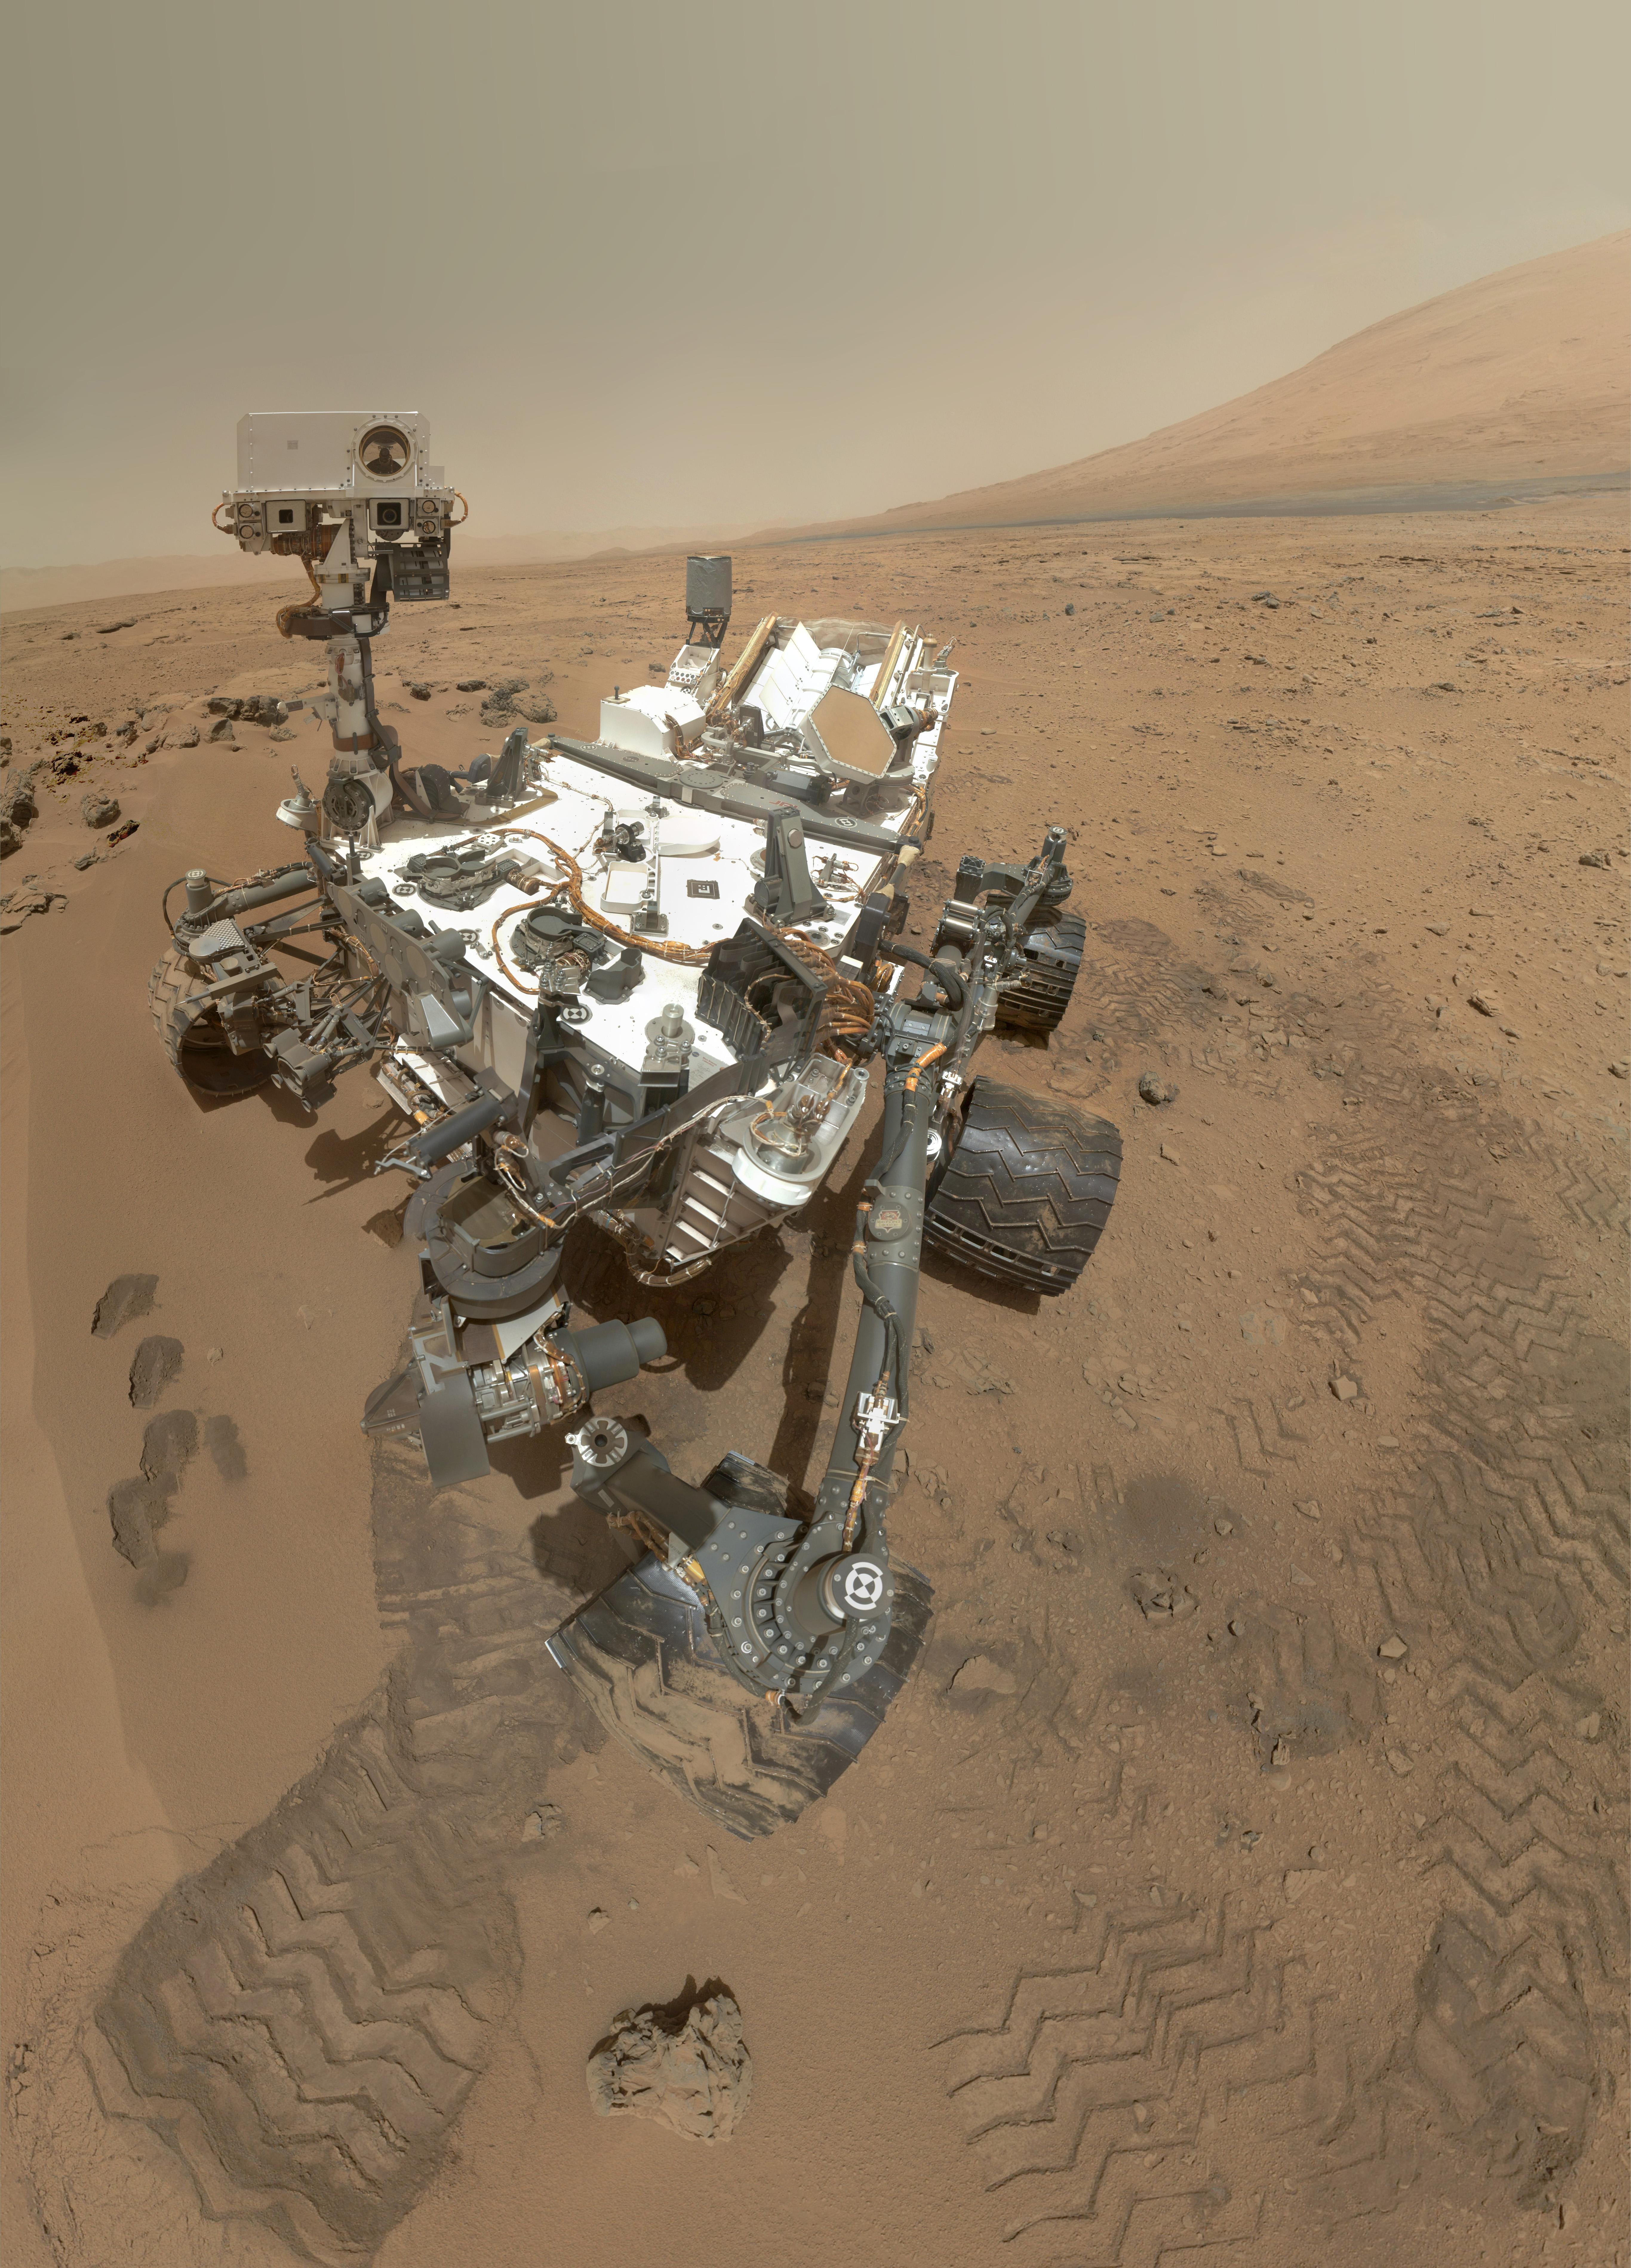 NASA image of the Curiosity Rover